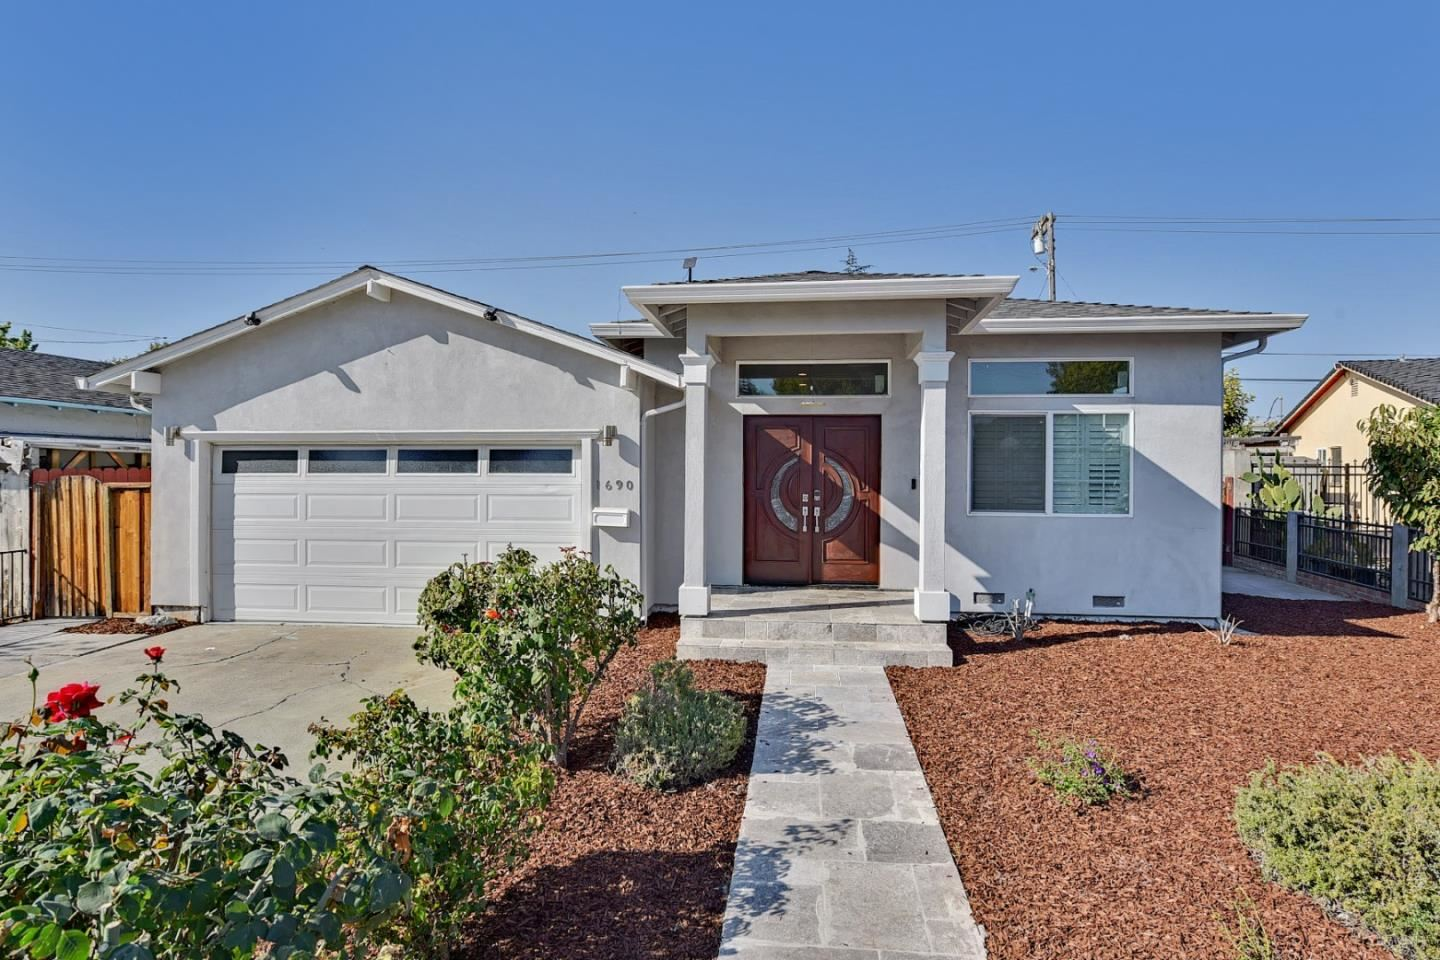 Photo for 1690 Spring Street, MOUNTAIN VIEW, CA 94043 (MLS # ML81862131)